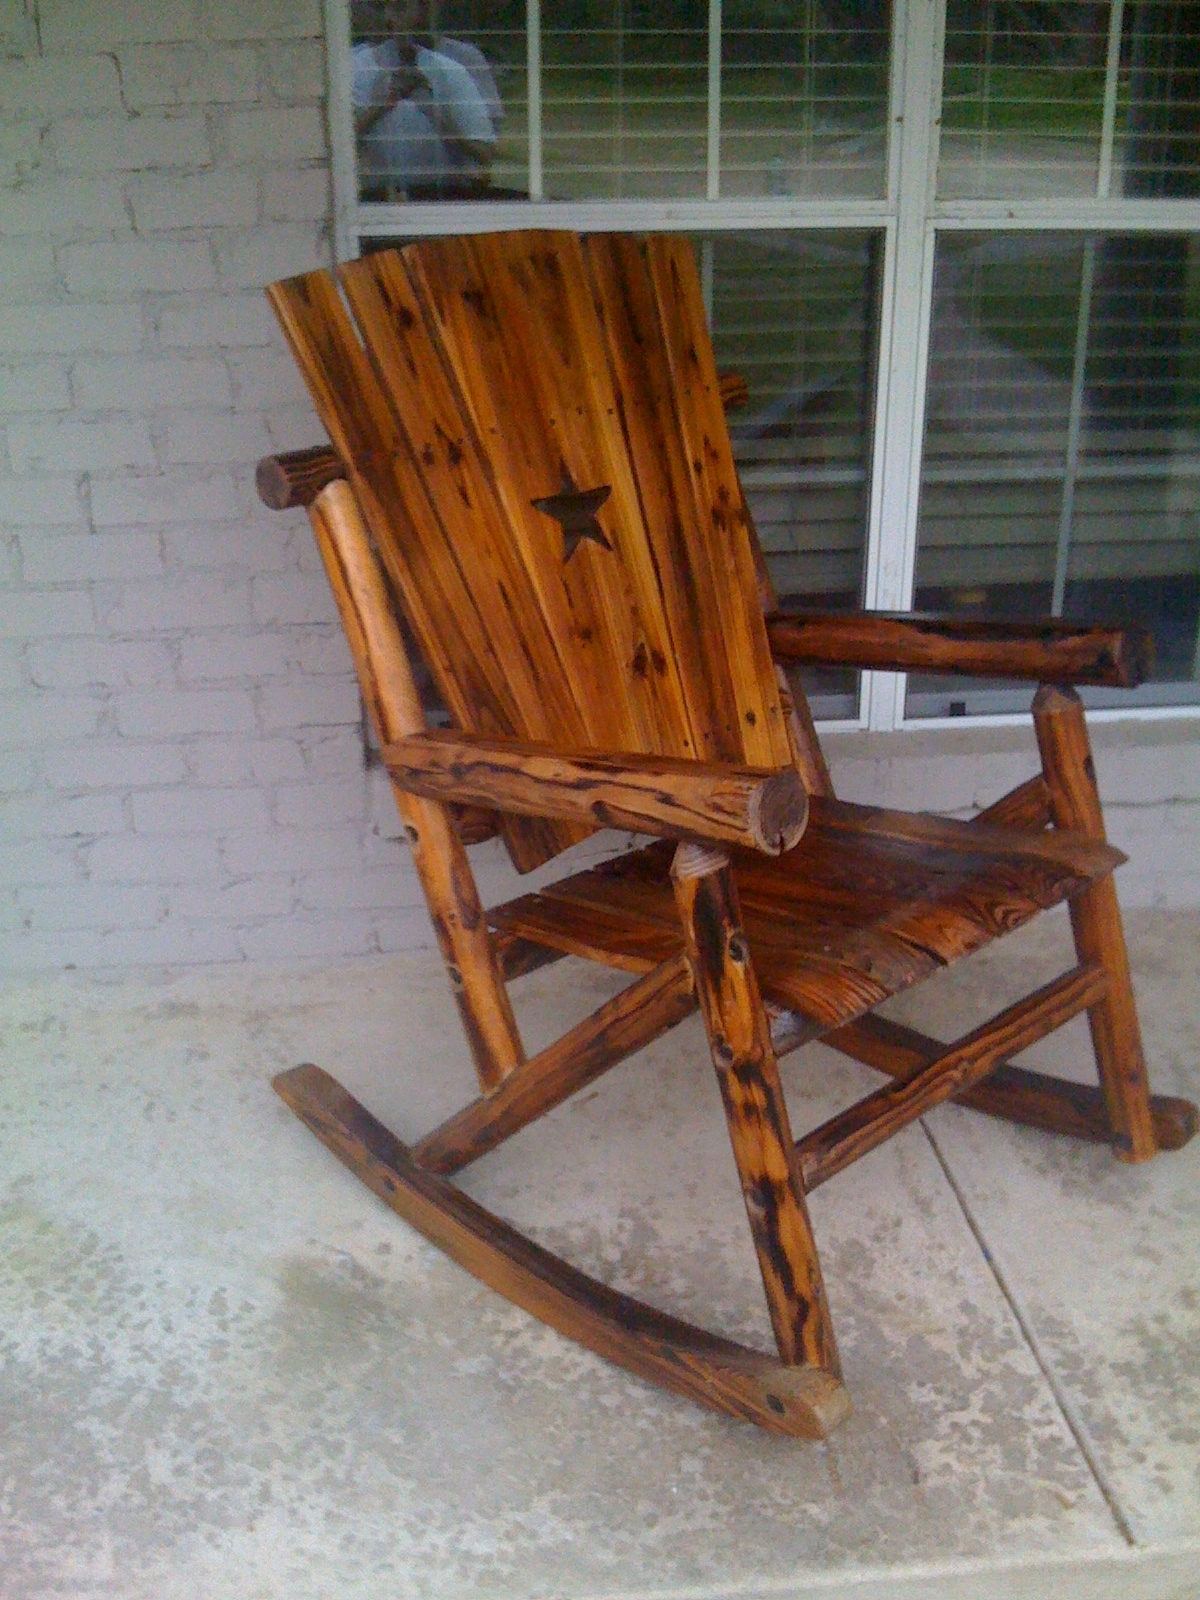 Patio Wooden Rocking Chairs Regarding Preferred Outdoor Wooden Rocking Chairs Rustic : Pleasure Outdoor Wooden (View 6 of 15)